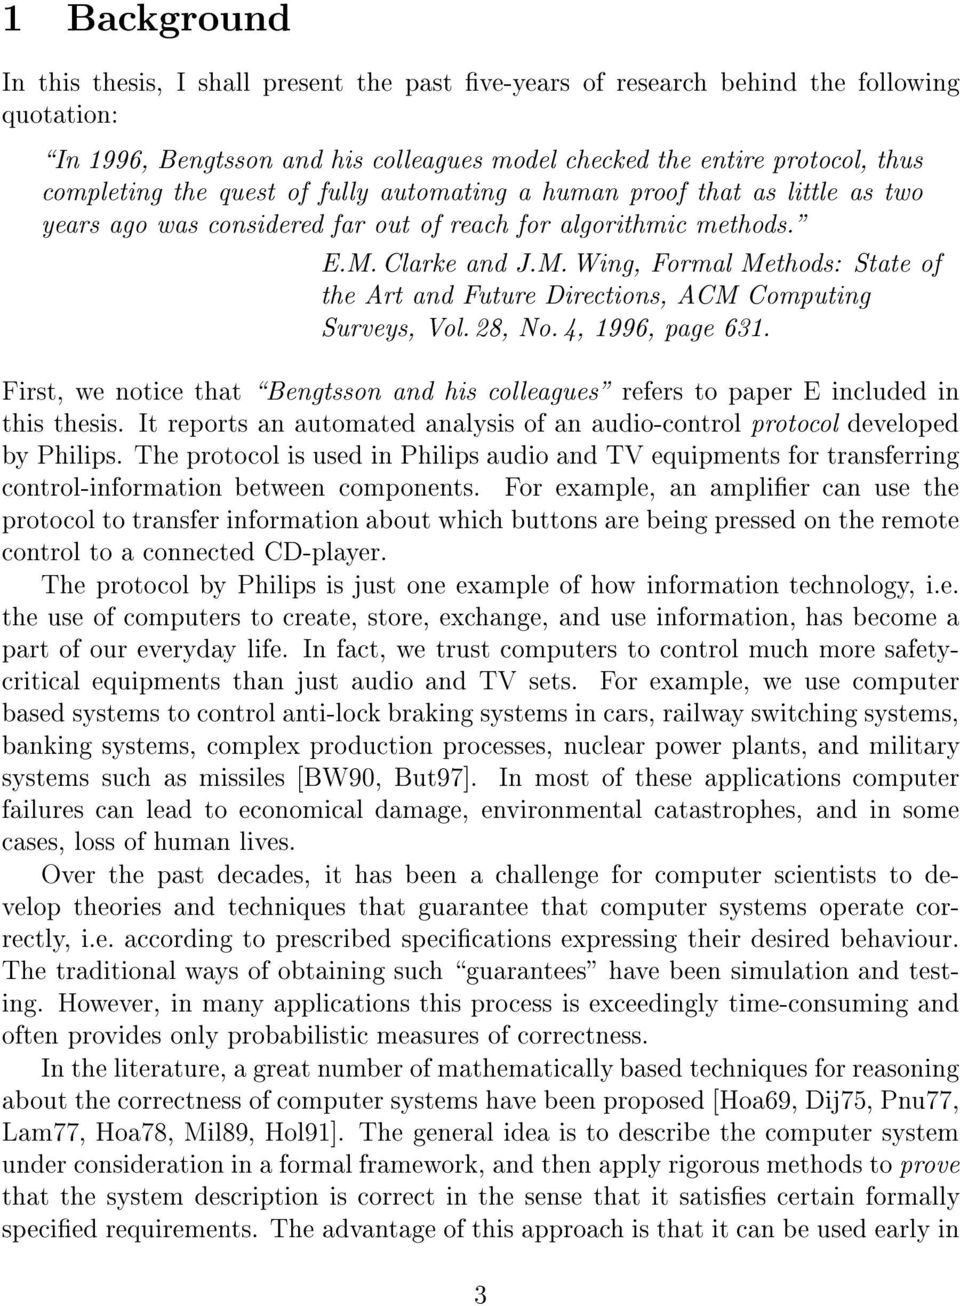 Clarke and J.M. Wing, Formal Methods: State of the Art and Future Directions, ACM Computing Surveys, Vol. 28, No. 4, 1996, page 631.